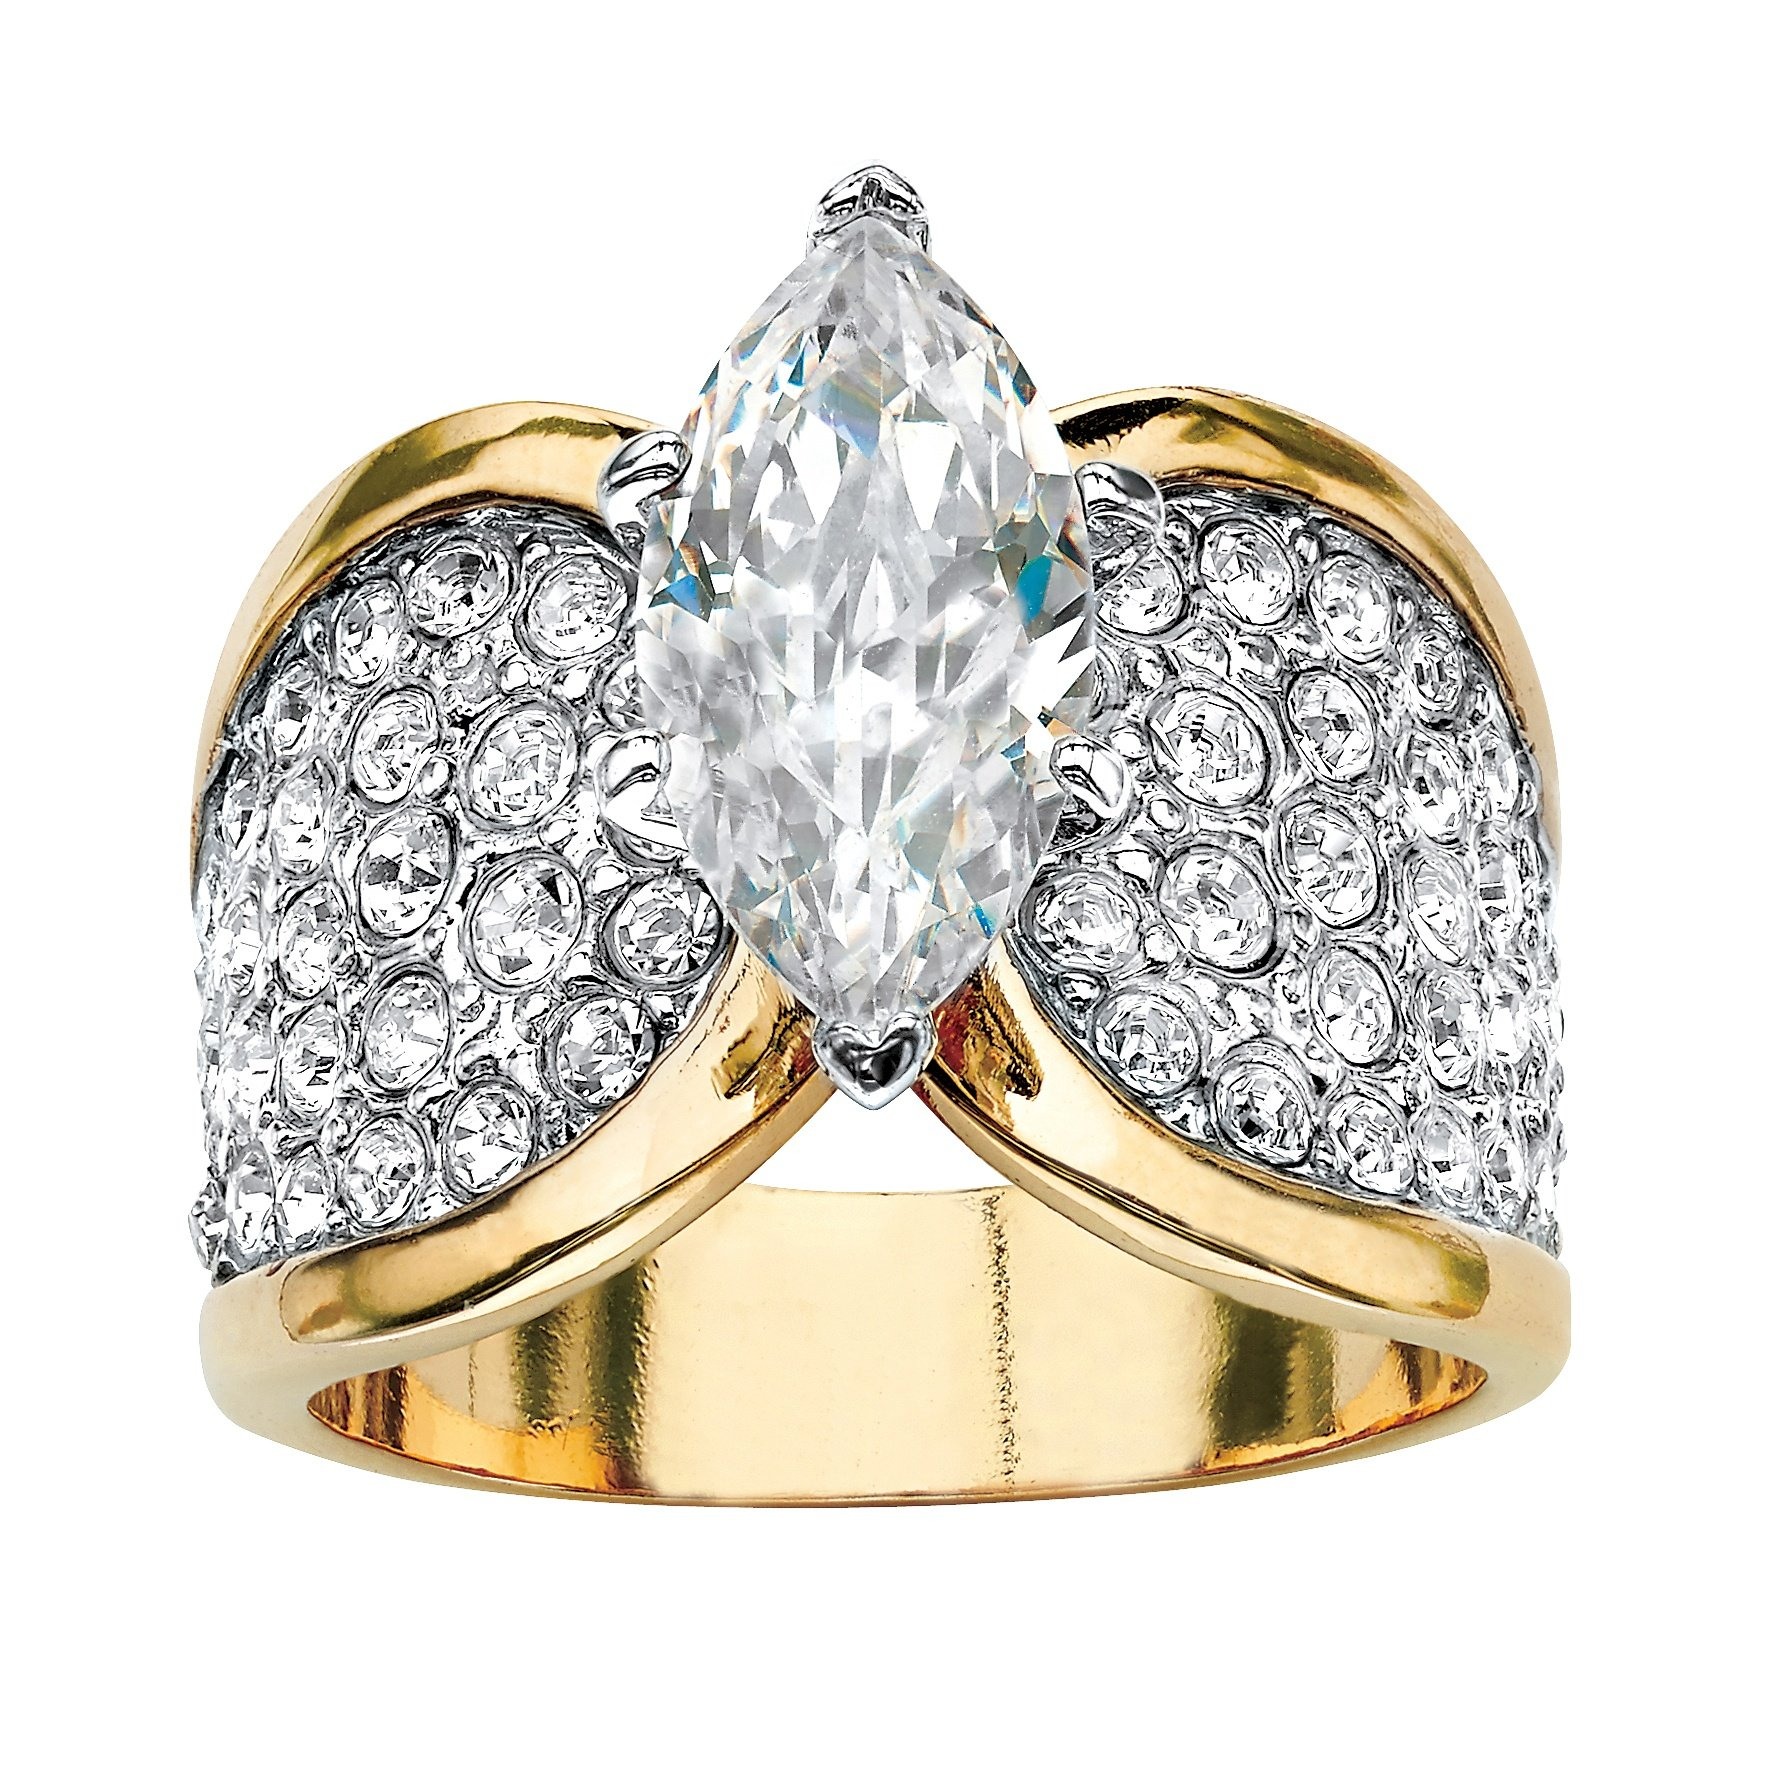 Palm Beach Jewelry Marquise-Cut Cubic Zirconia and Crystal 14k Gold-Plated Cocktail Ring Size 8